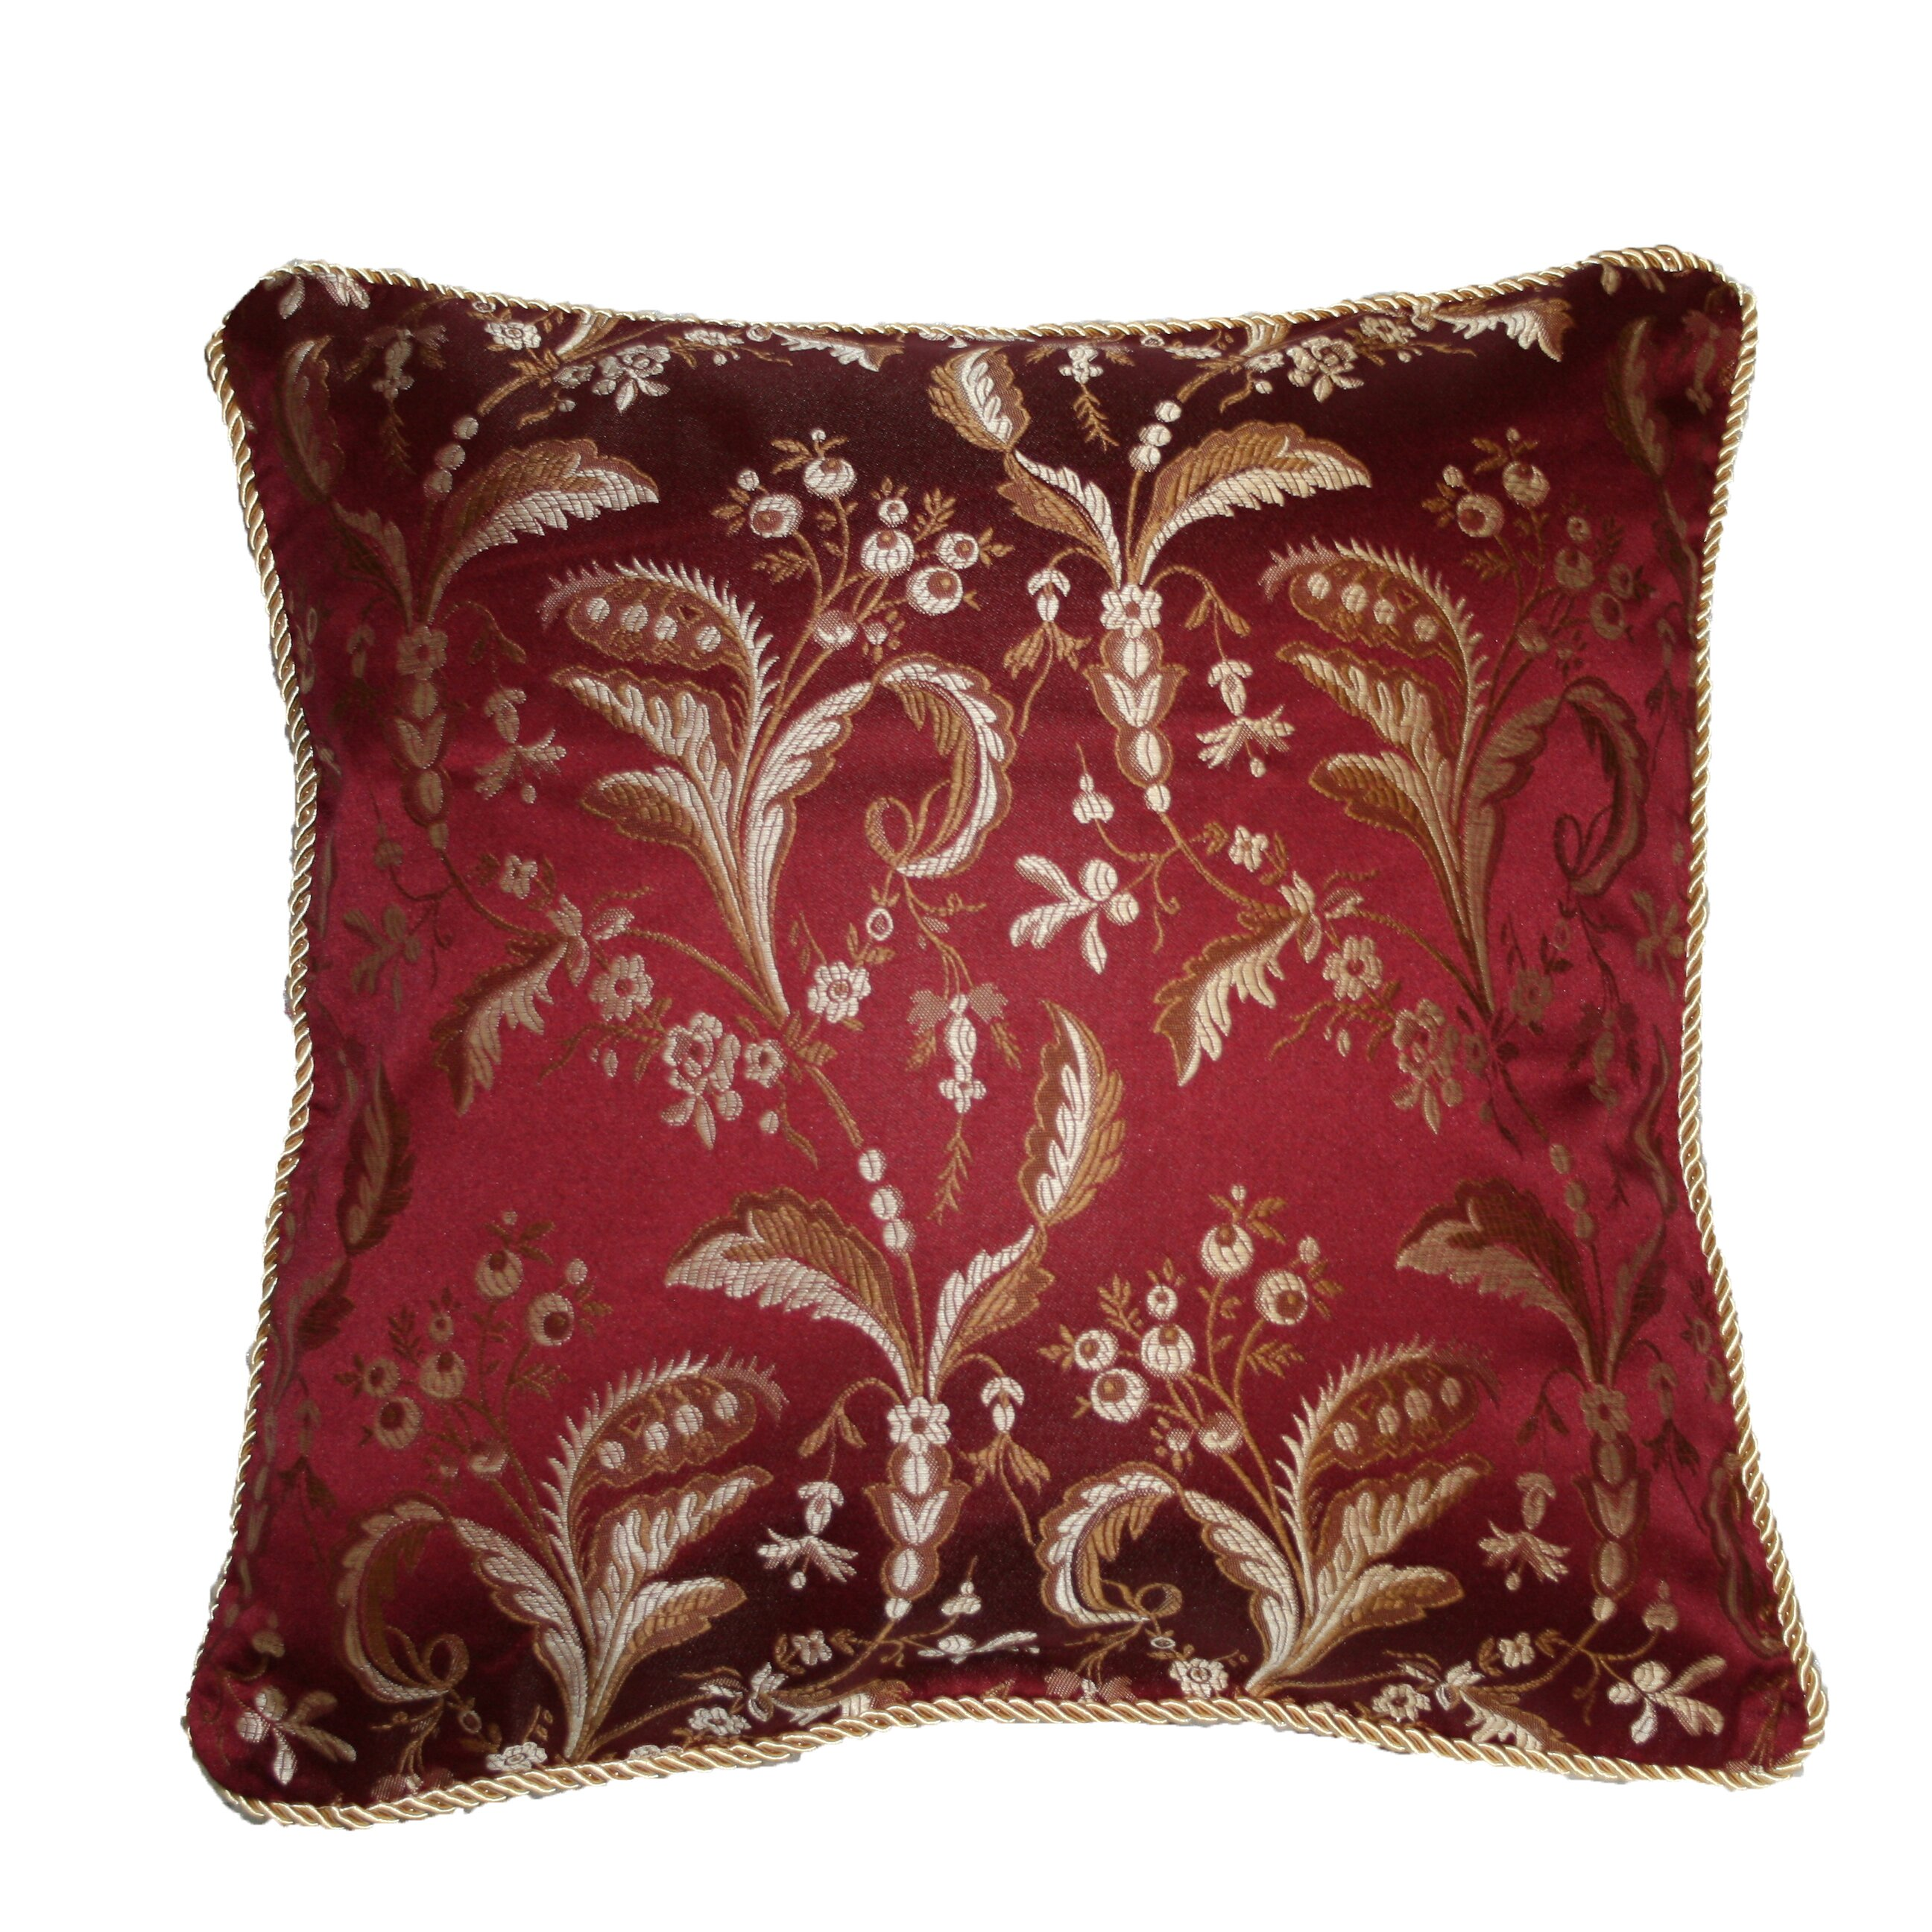 Wayfair Decorative Pillow Covers : Legacy Damask Design Decorative Pillow Cover Wayfair